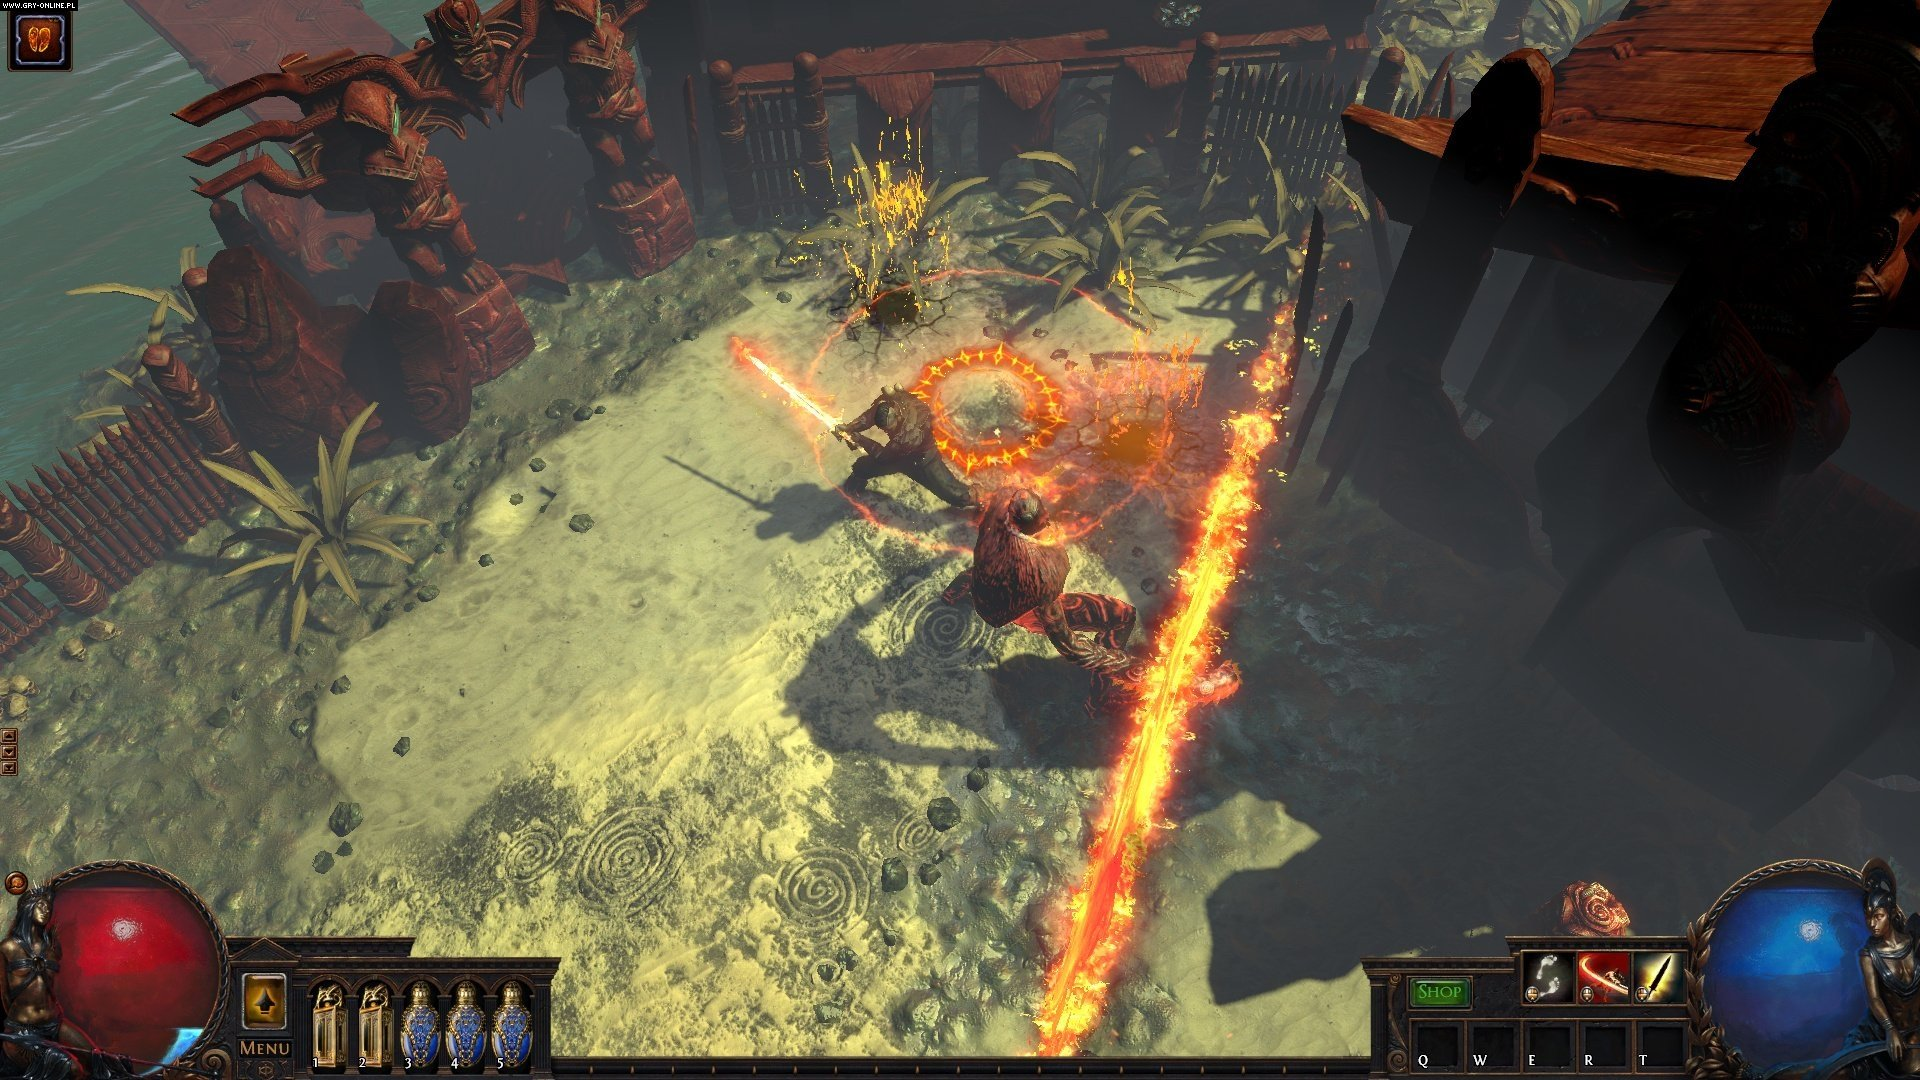 Path of Exile PC, XONE Gry Screen 5/69, Grinding Gear Games